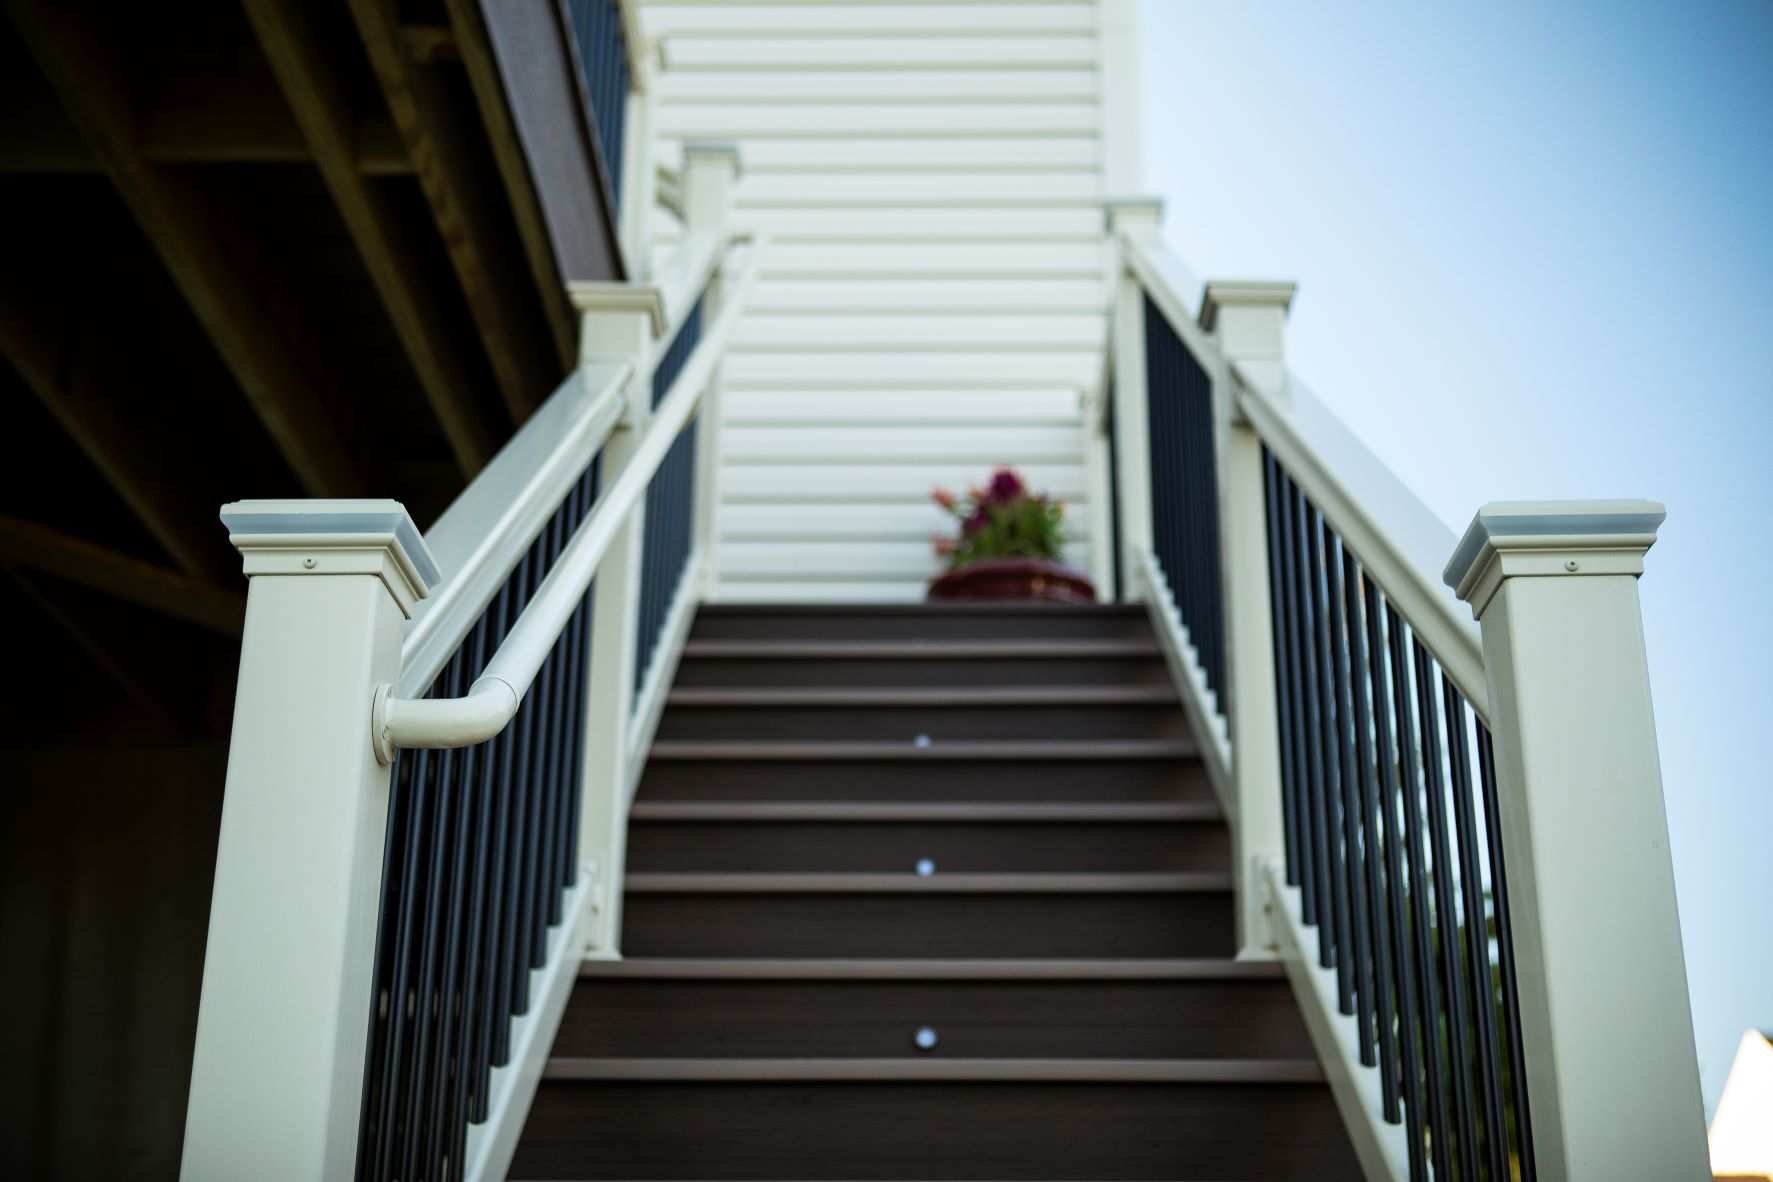 The Difference Between Handrail and Guardrail